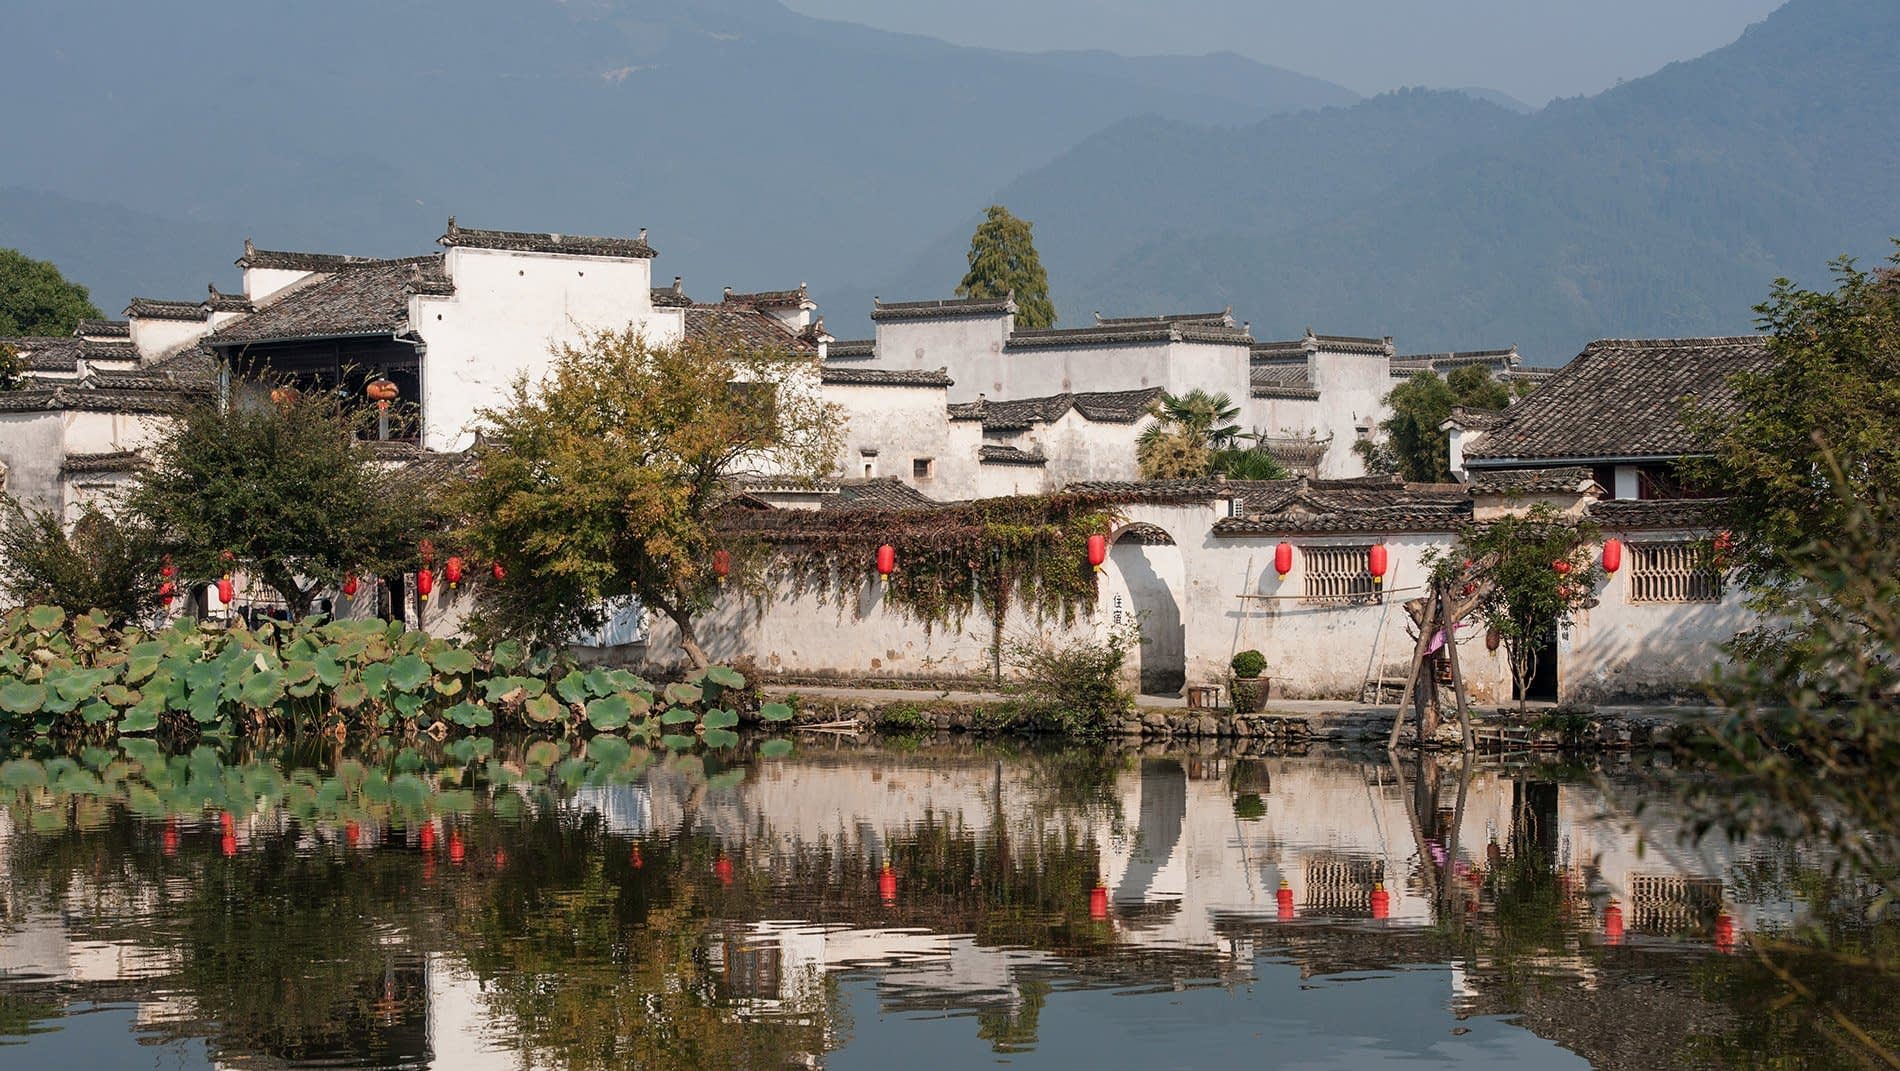 Hongcun~Dating back hundreds of years to the northern Song dynasty, when China's capital moved to nearby Hangzhou, numerous ancient, pretty villages, such as this one, dot the landscape.